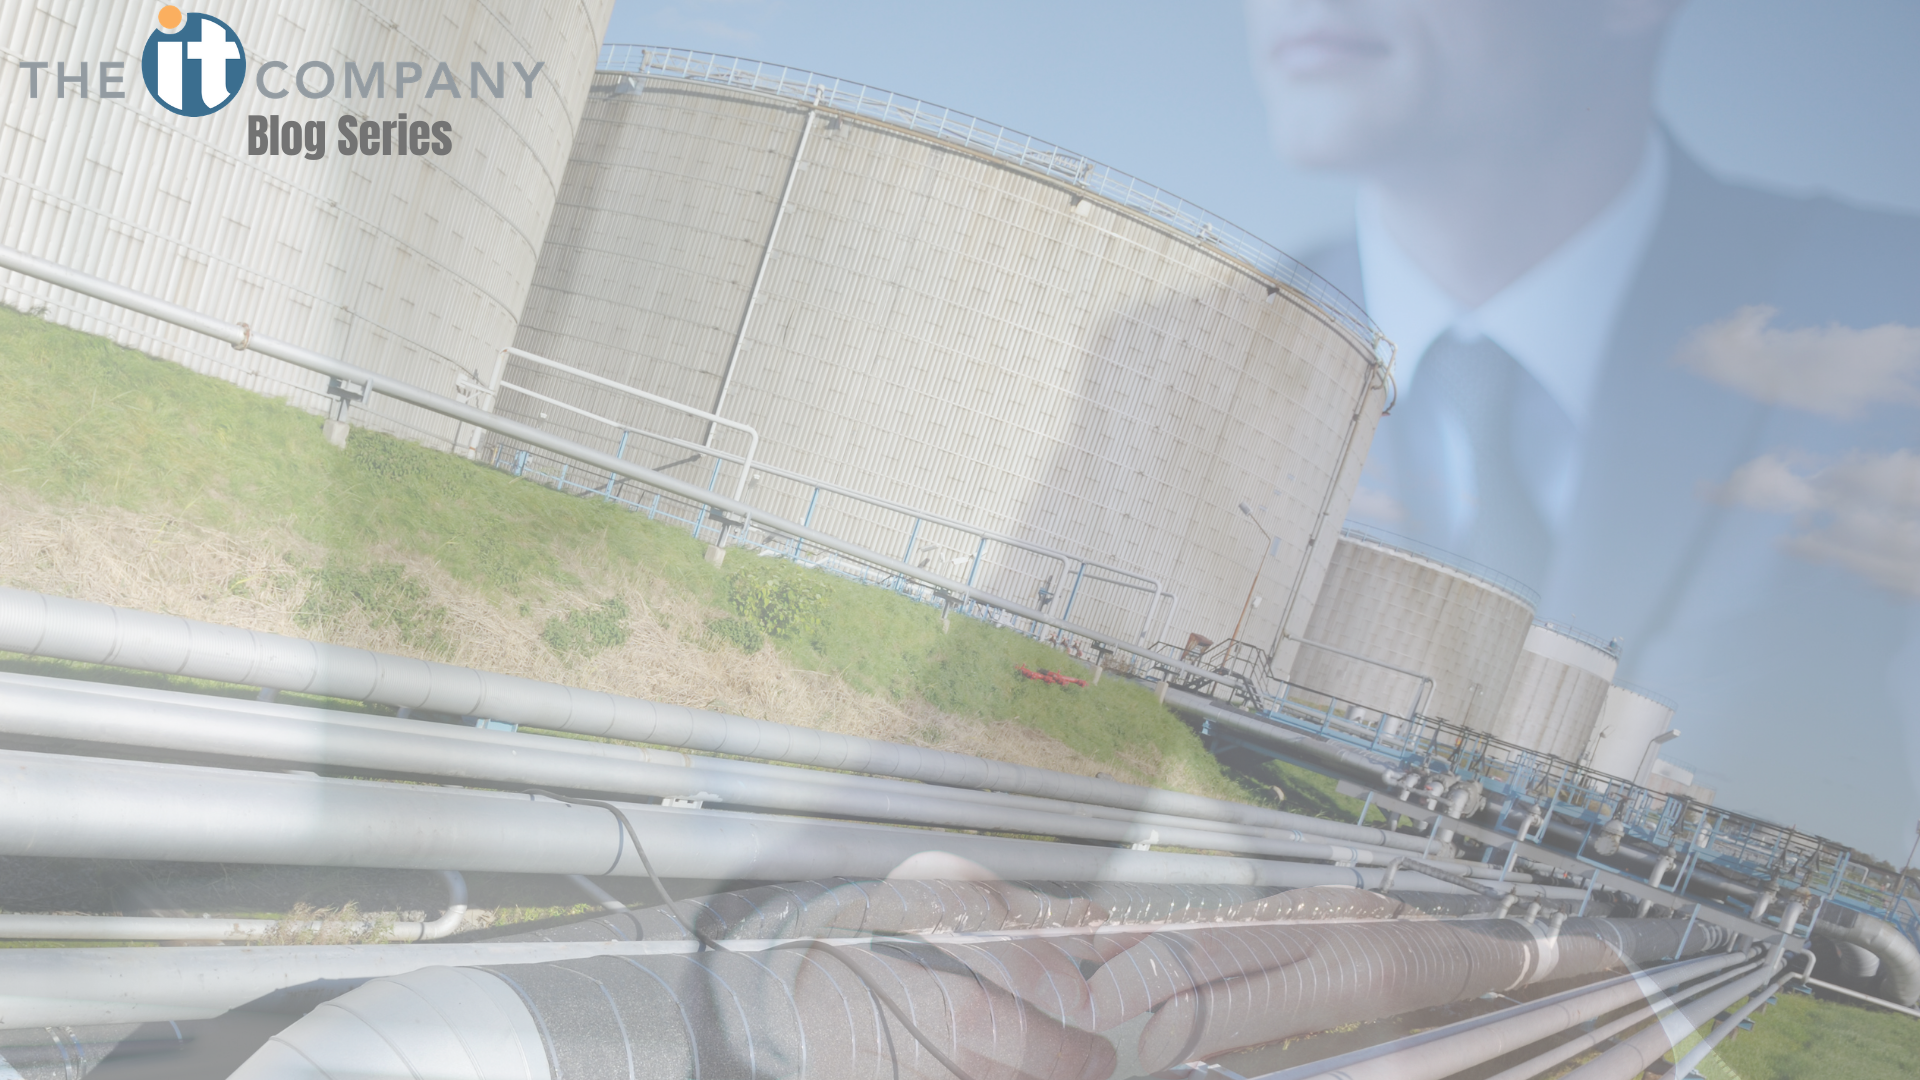 A Cyberattack on the Fuel Pipeline... What Does That Mean to Me as a Business Leader?